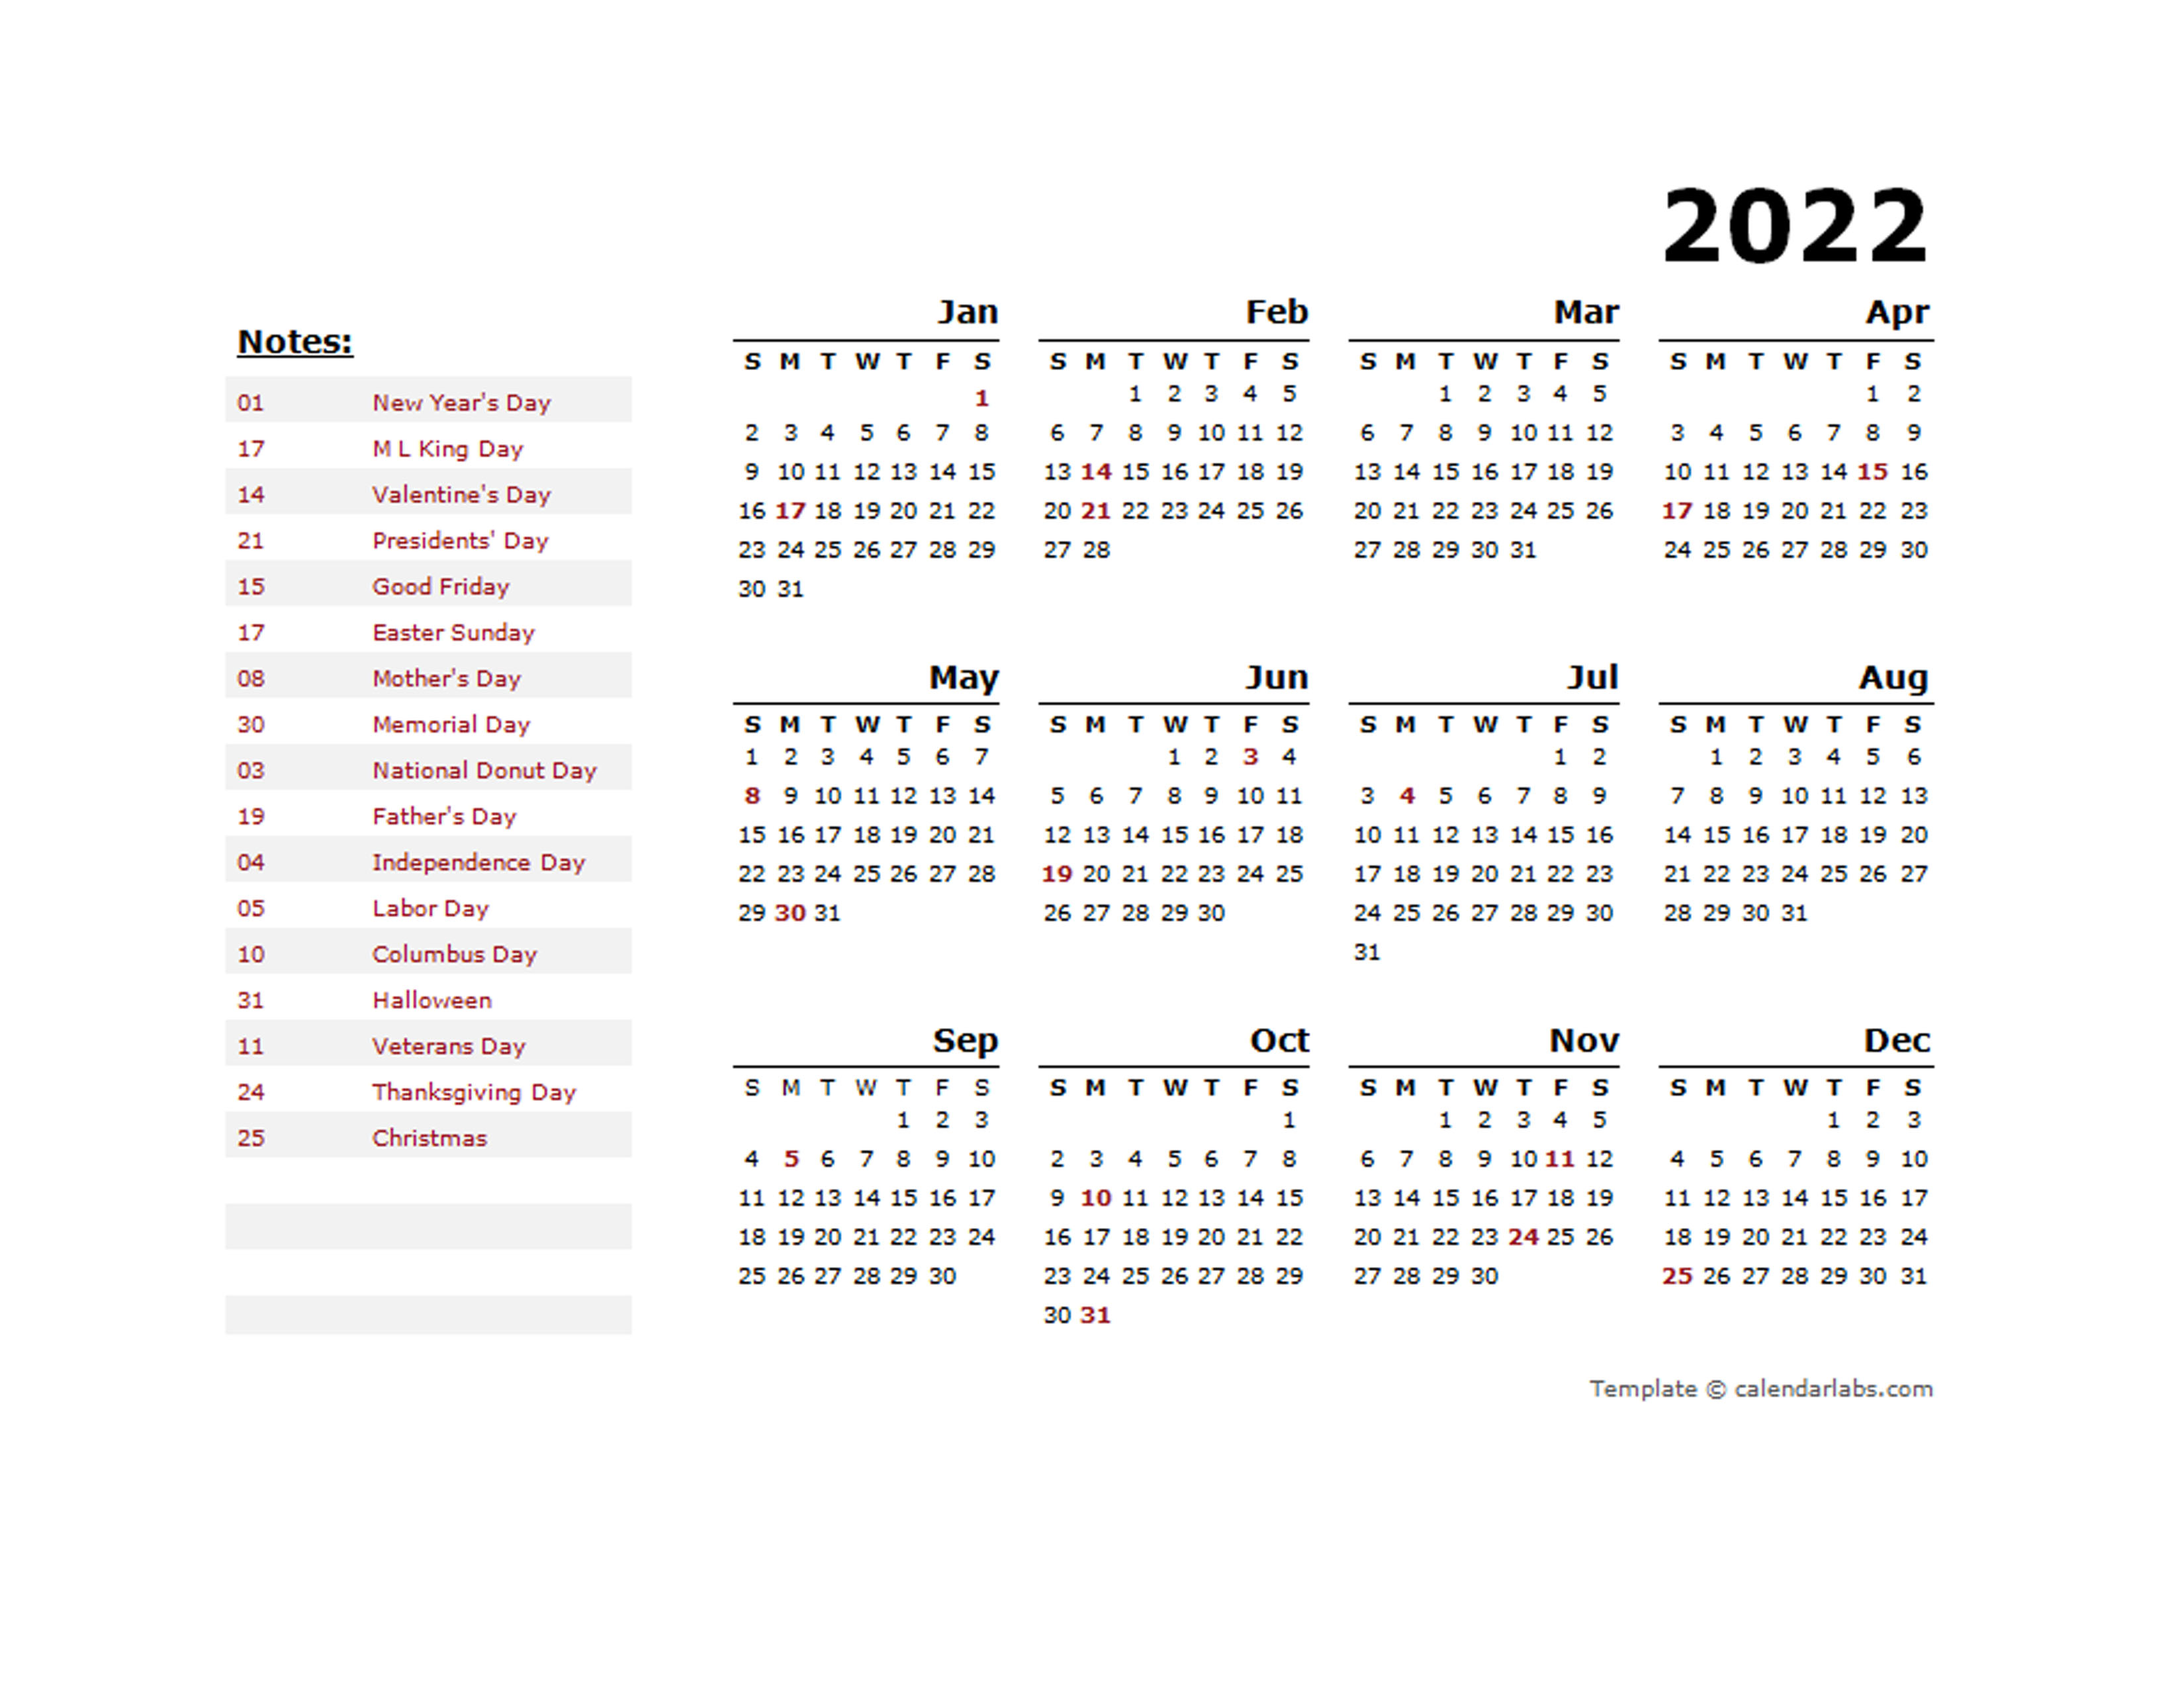 2022 Year Calendar Template with US Holidays - Free ...